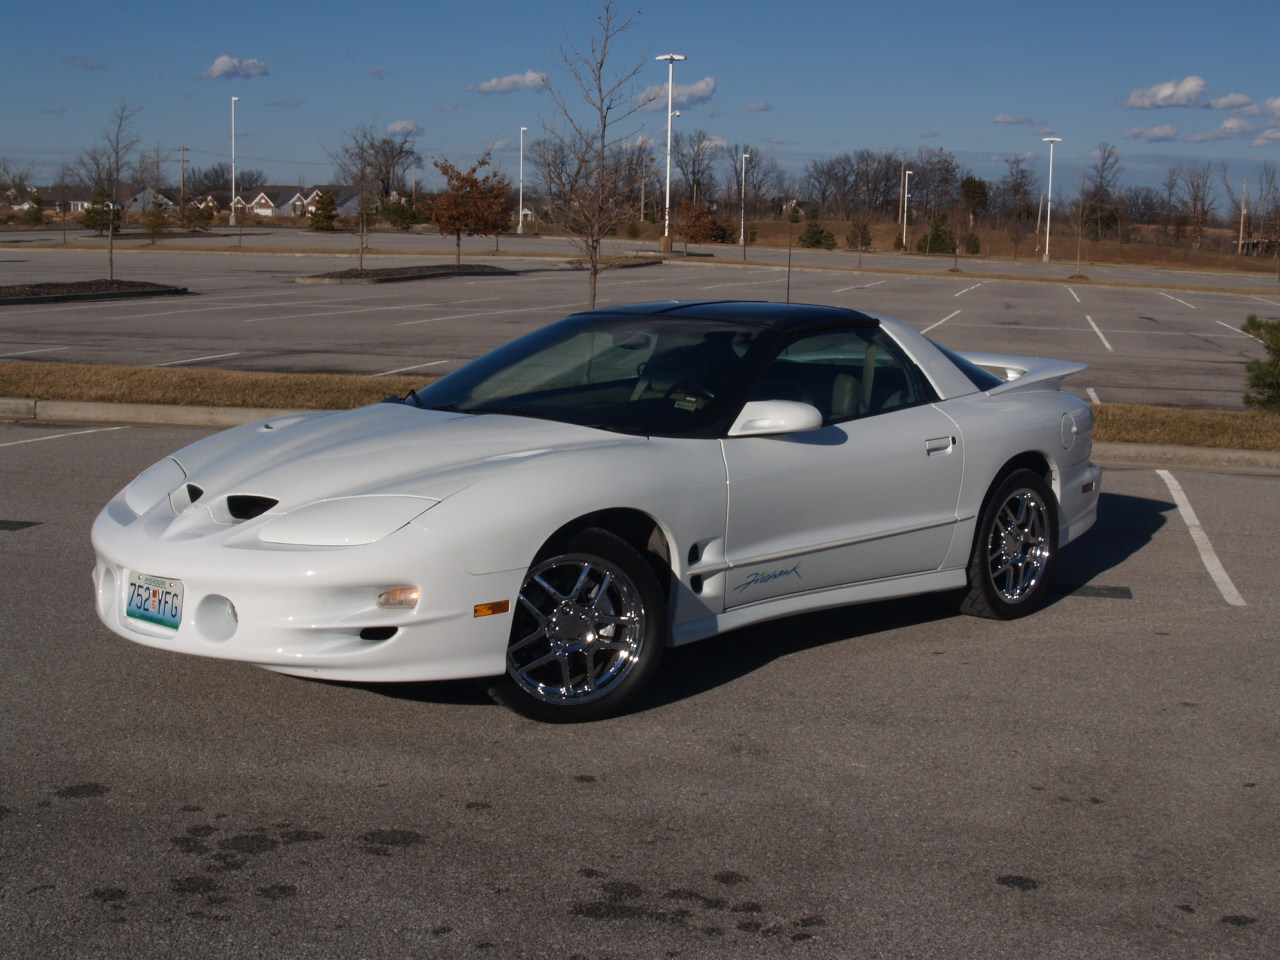 2002 pontiac trans am firehawk. Black Bedroom Furniture Sets. Home Design Ideas